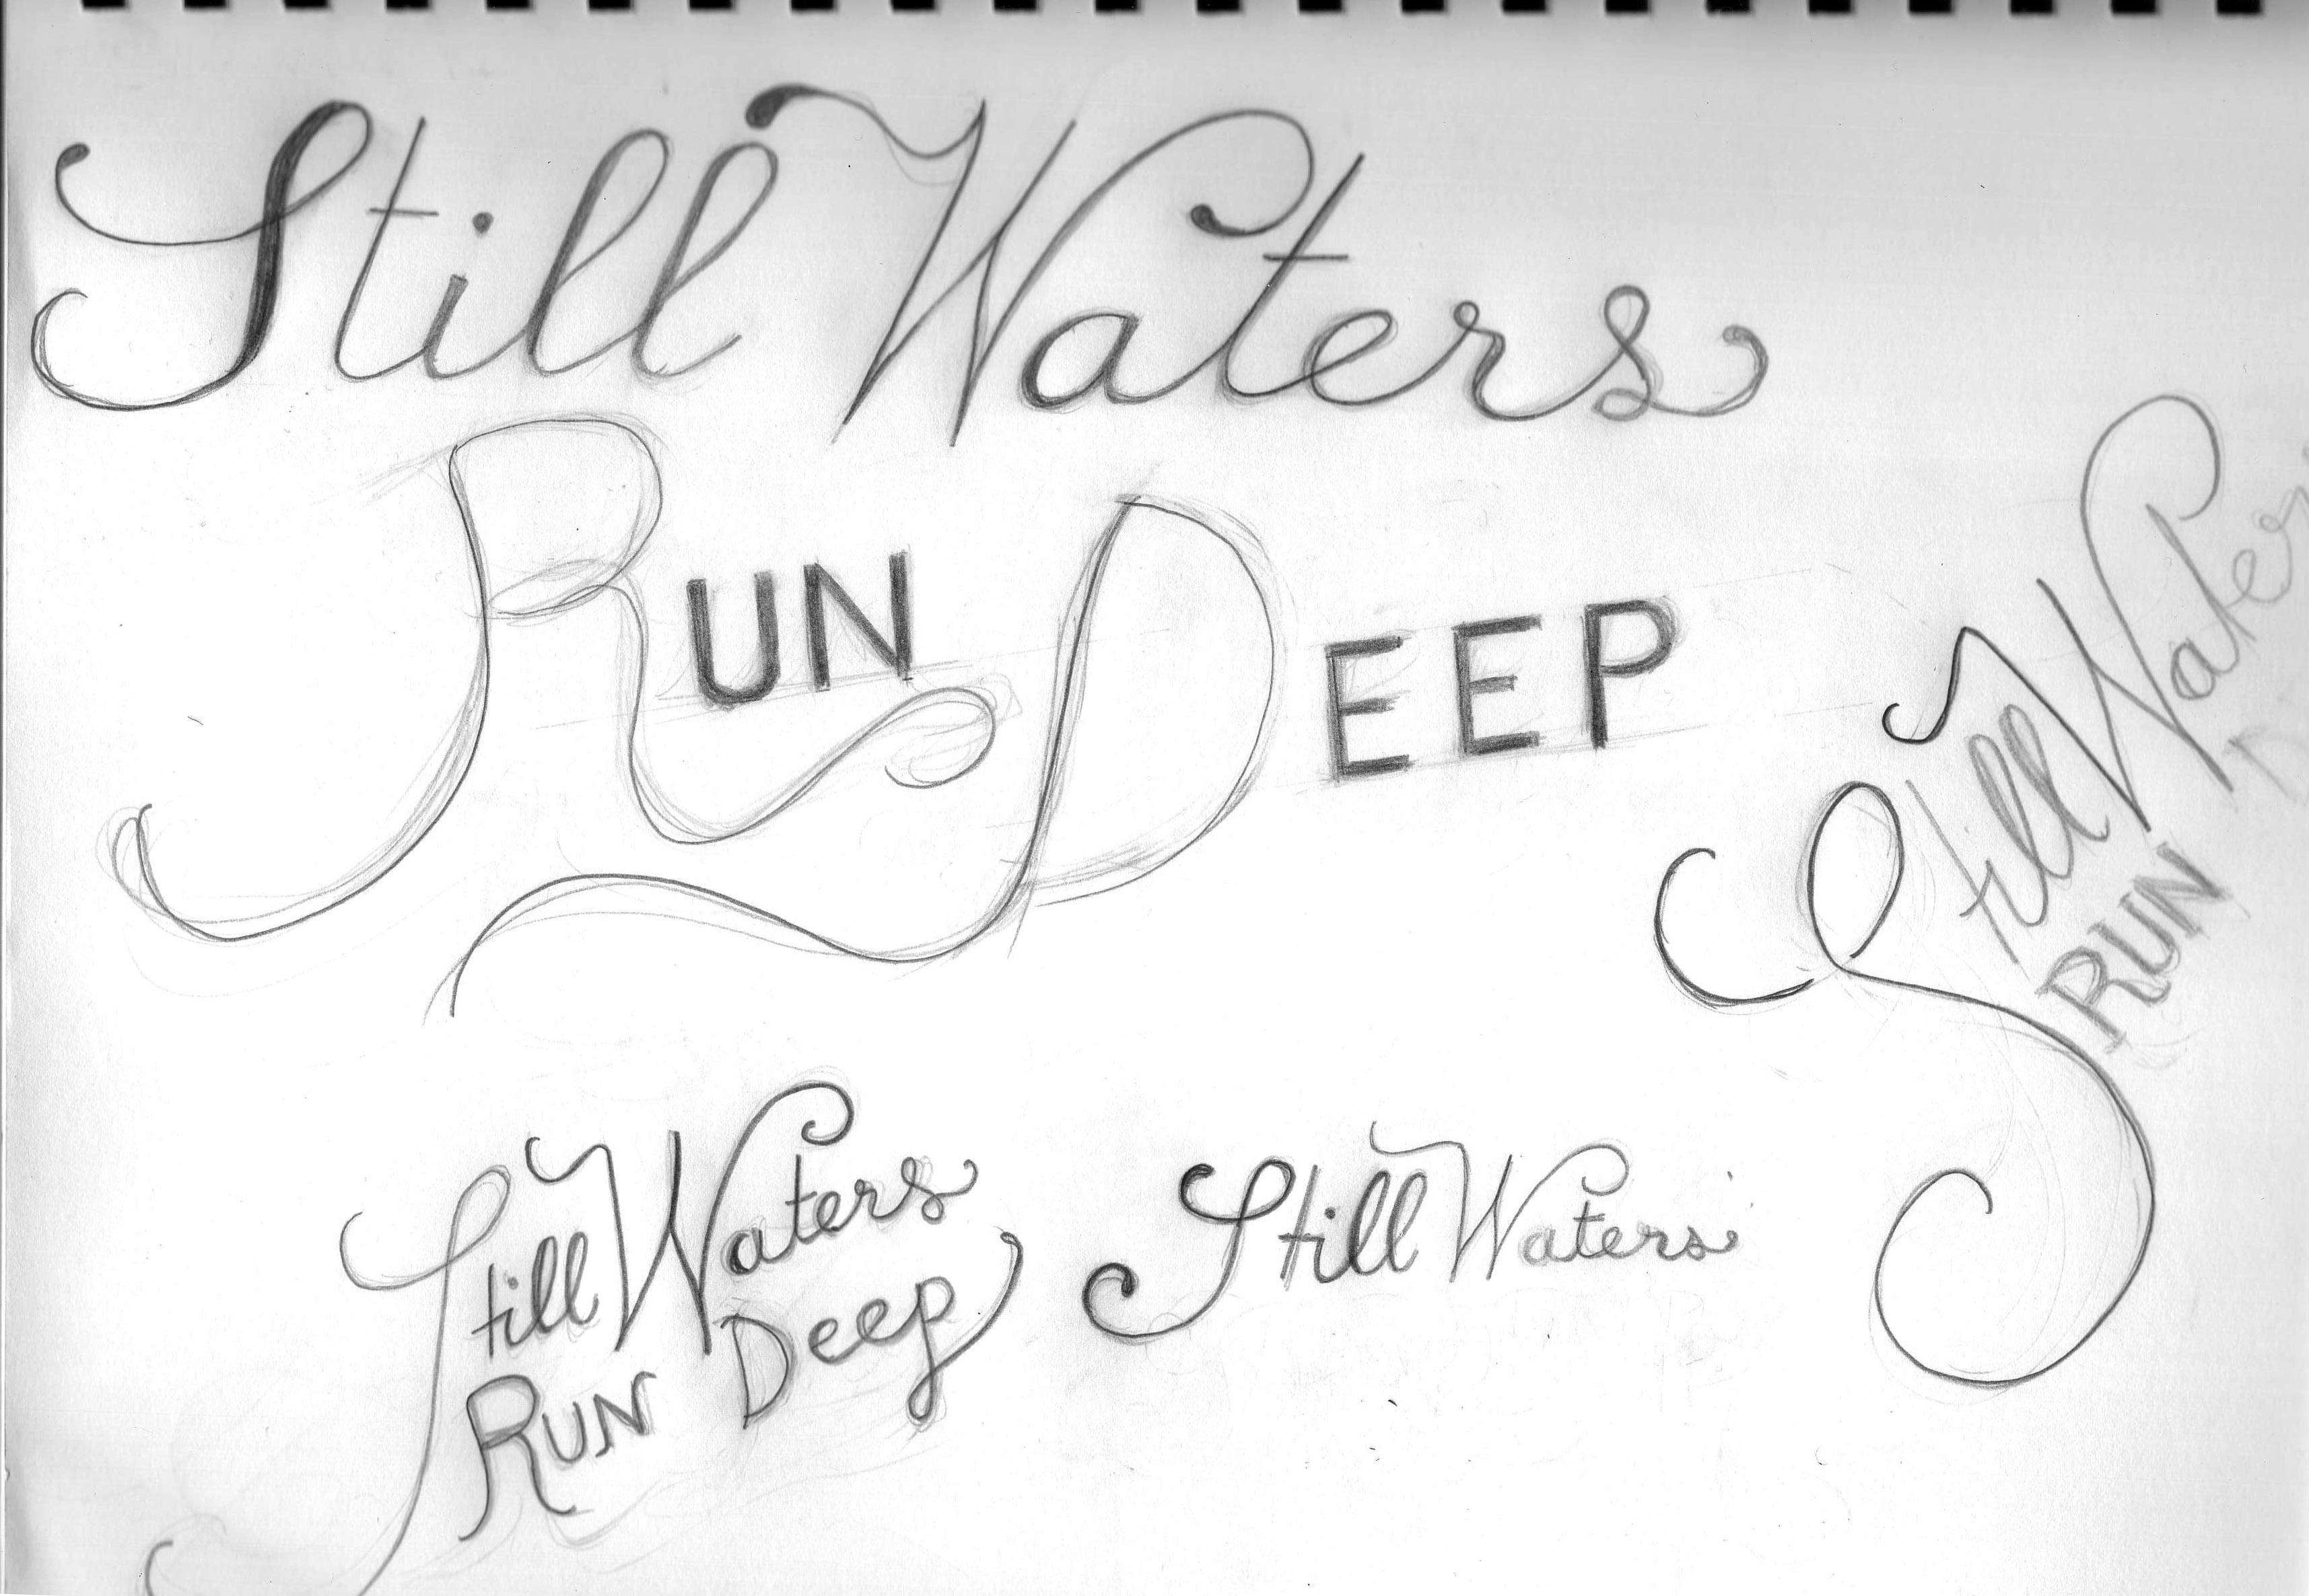 Still Waters Run Deep - image 1 - student project